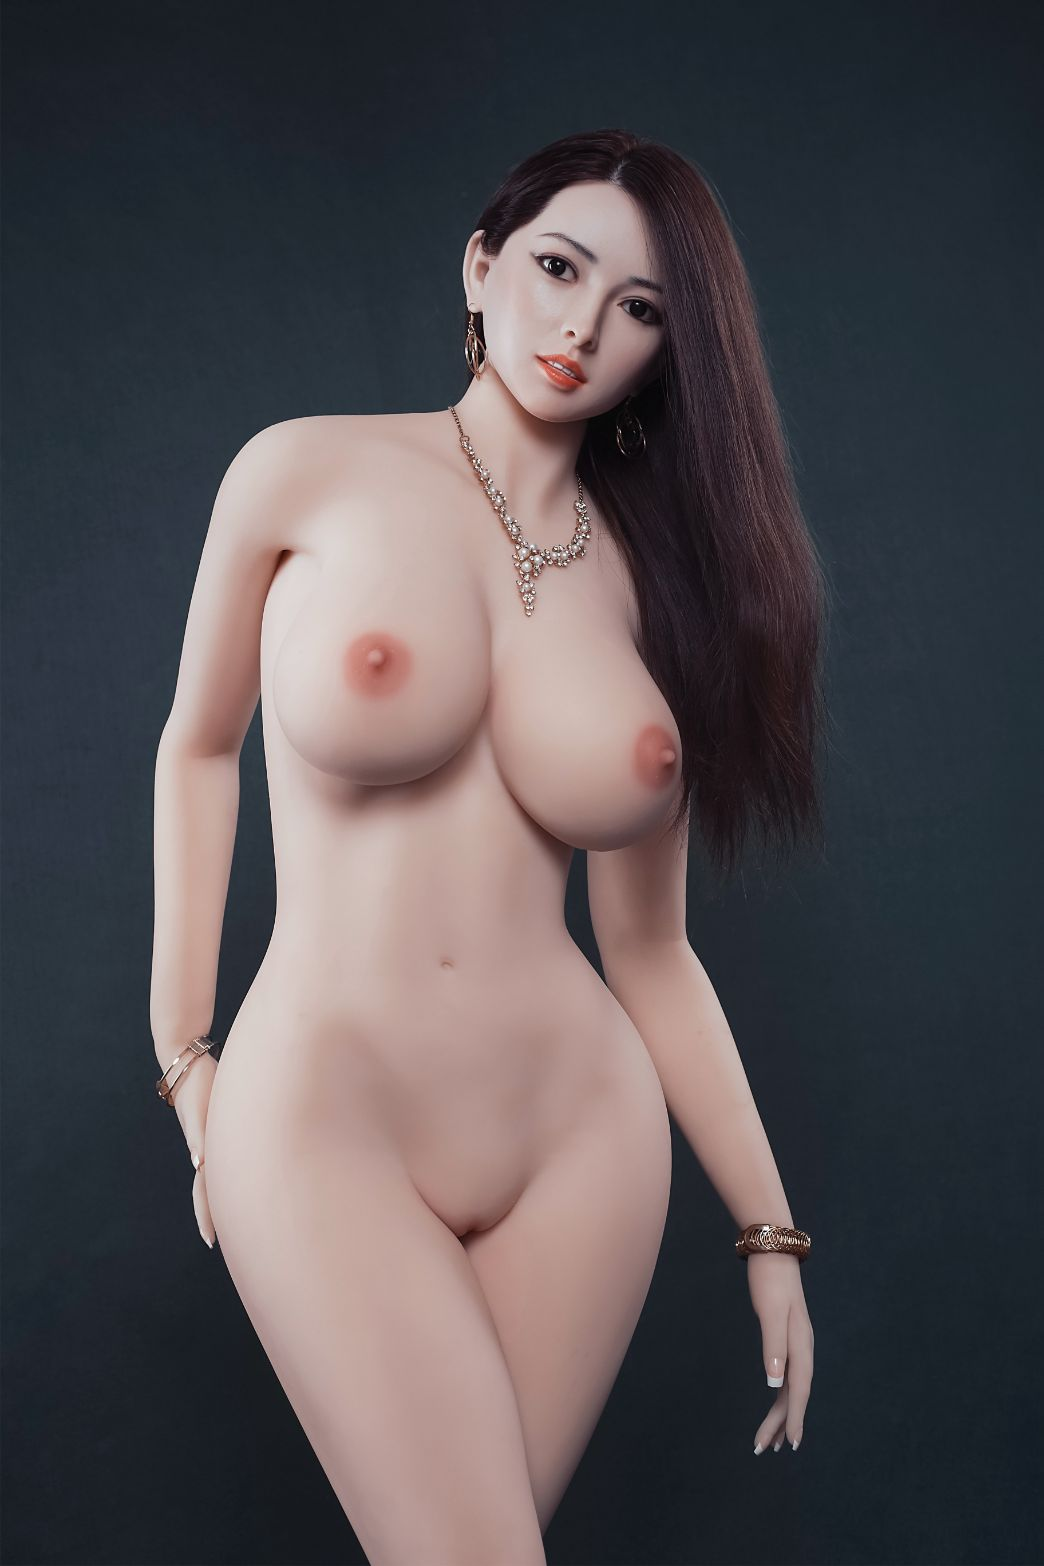 addison 166cm af black hair big boobs athletic tpe sex doll(9)